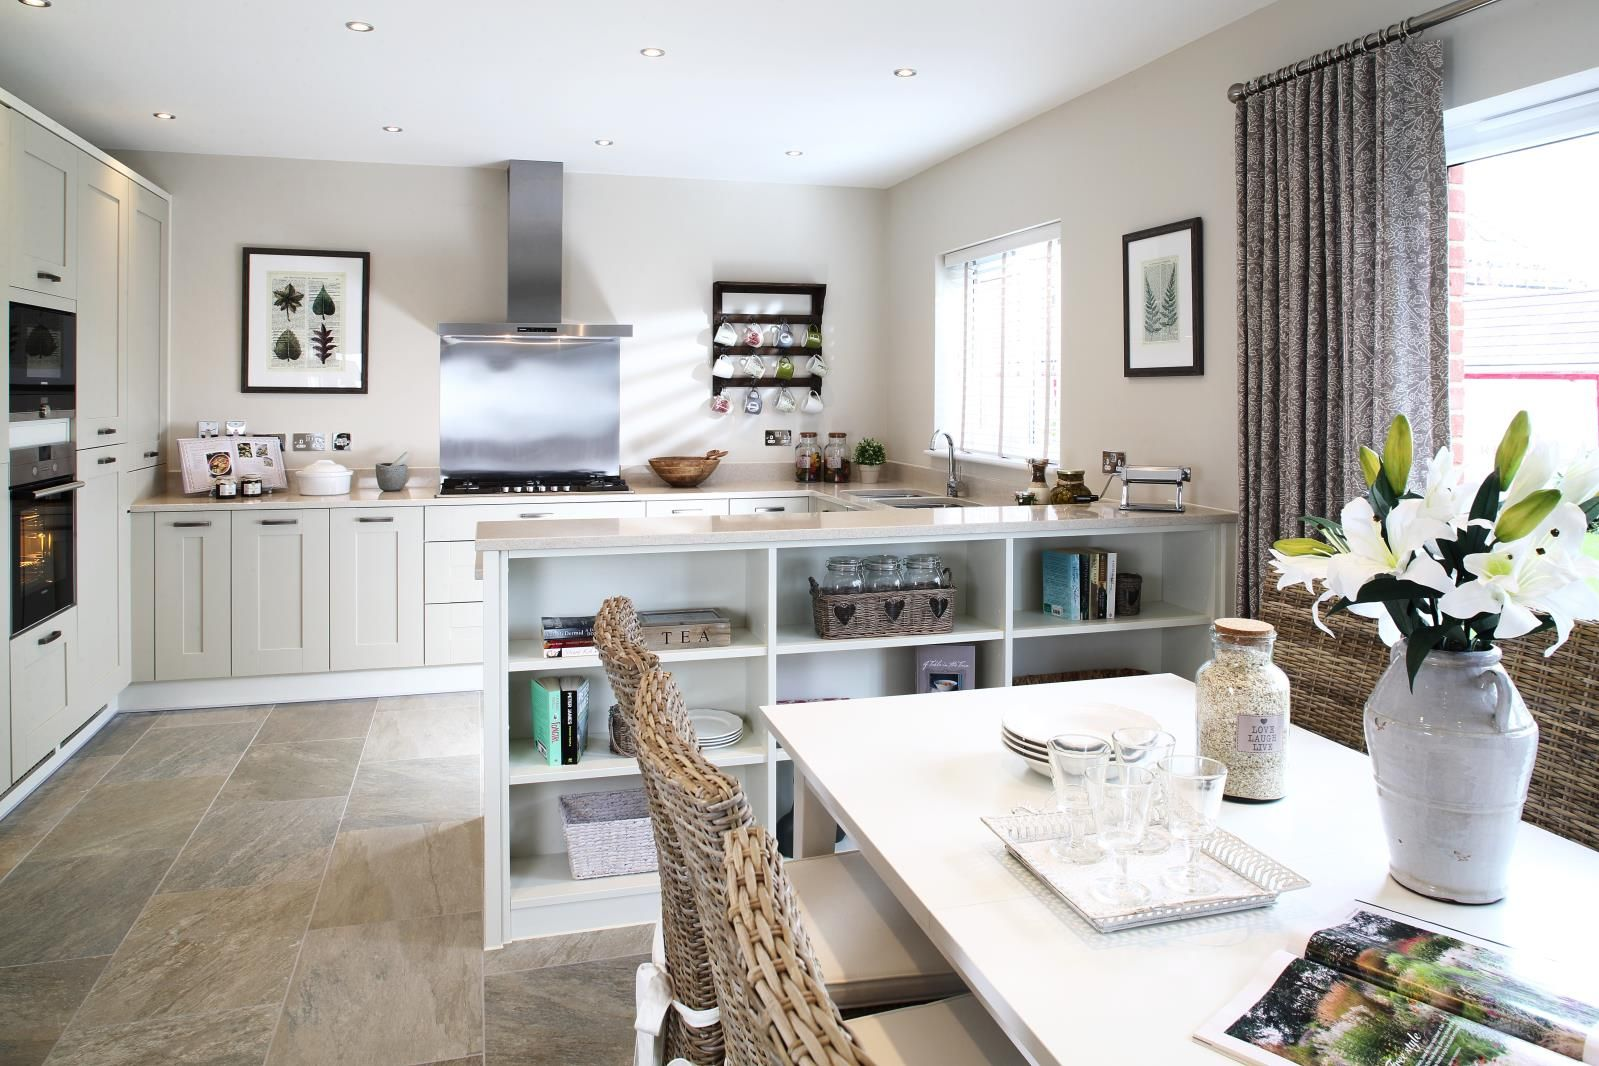 Create a fresh look in your kitchen with simple stone inspired hues ...